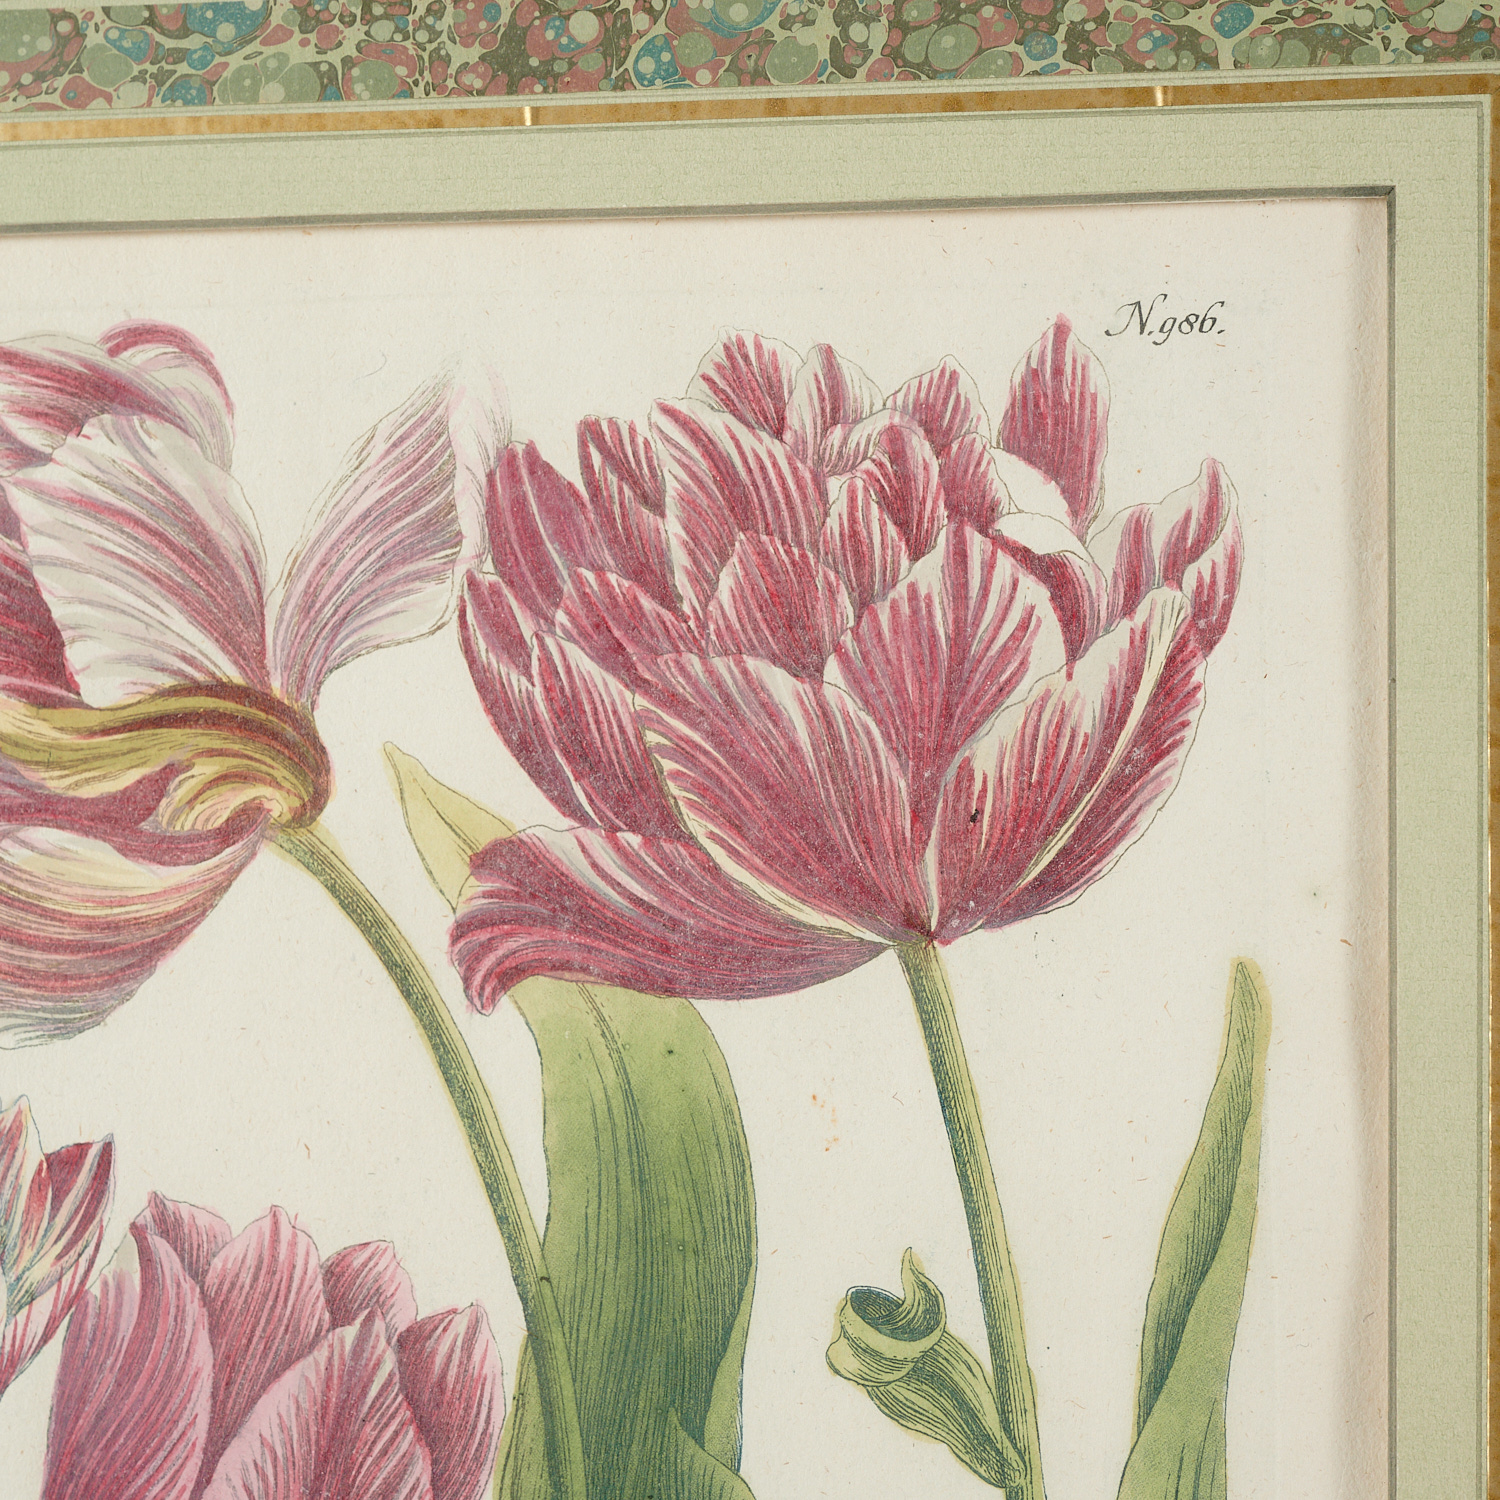 Lot 13 - Johann W. Weinnmann, (6) Botanical Engravings